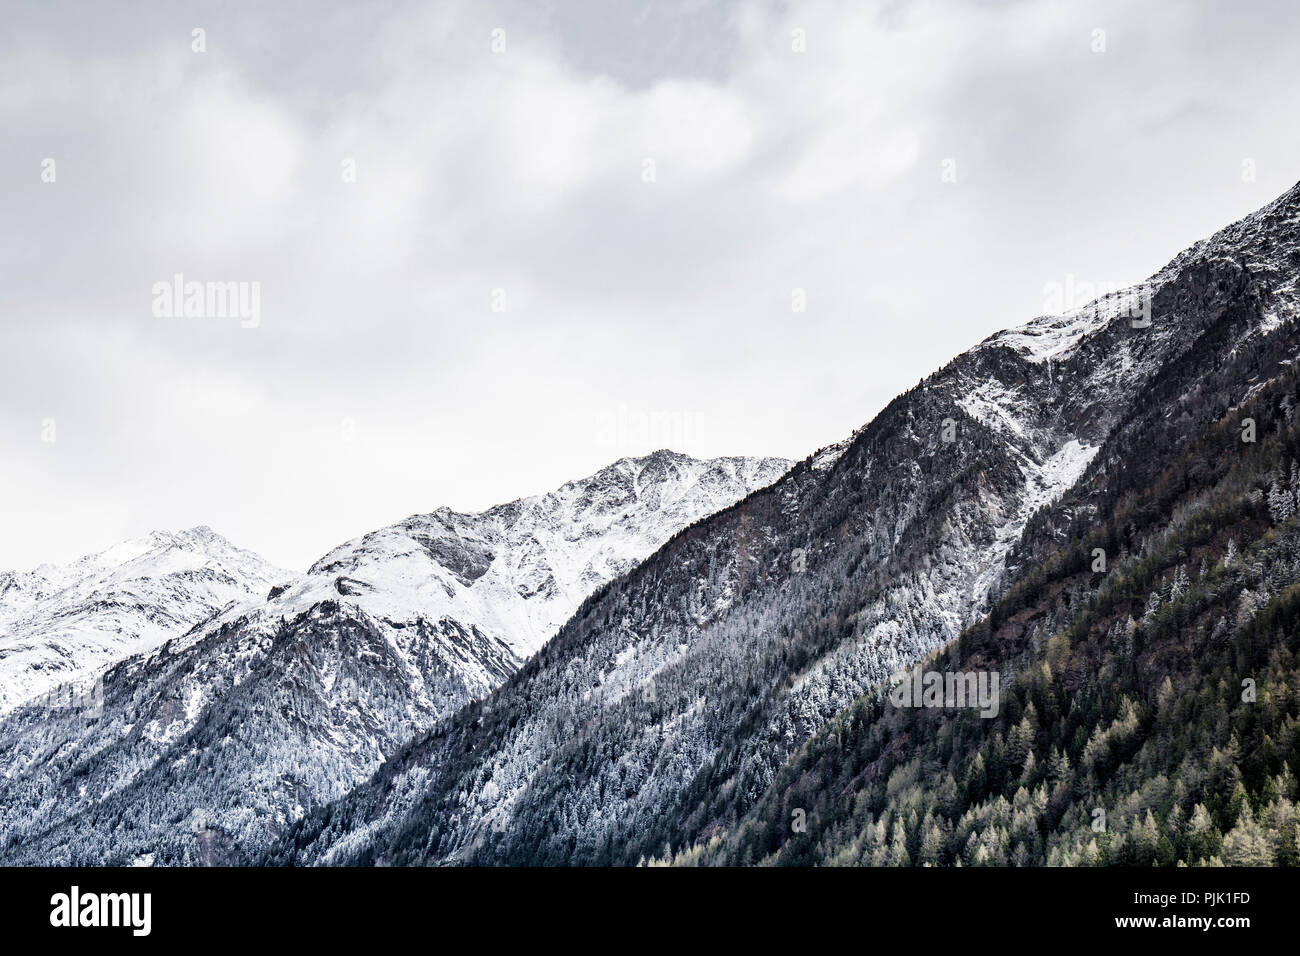 A snow covered slope with conifers in Tyrol - Stock Image